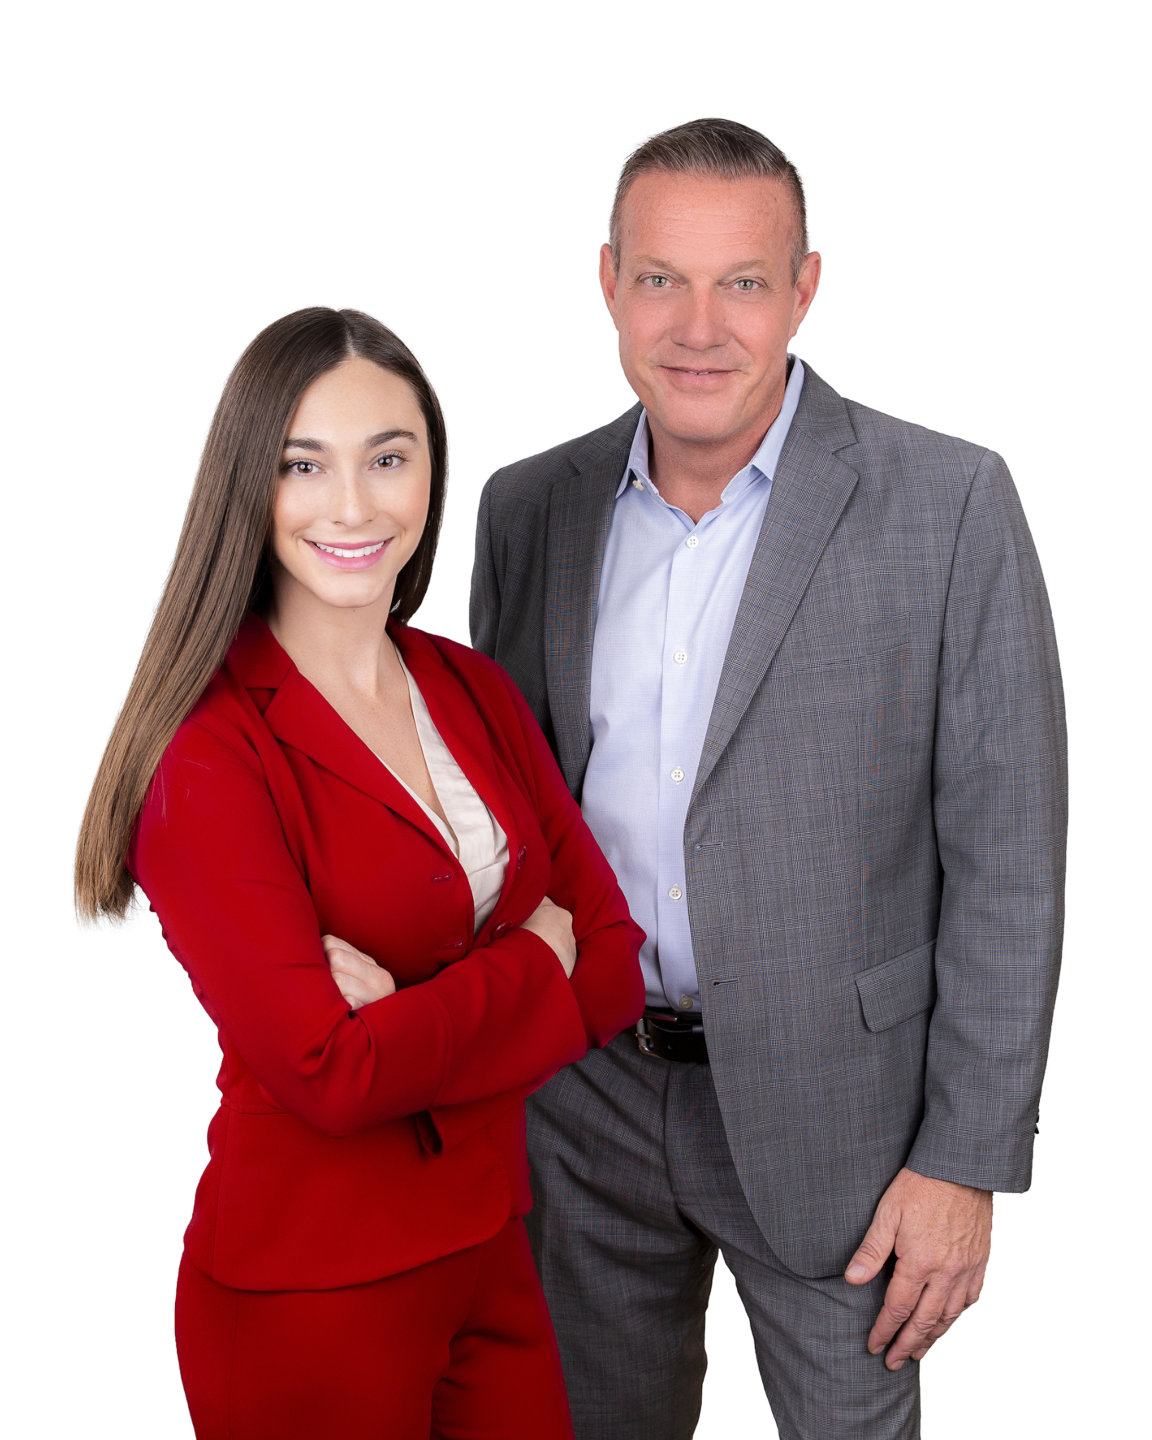 https://d31qoy4r9xtwgt.cloudfront.net/sites/688/bobby-volini-tampa-fl-real-estate-Bob-and-Claudia.jpg